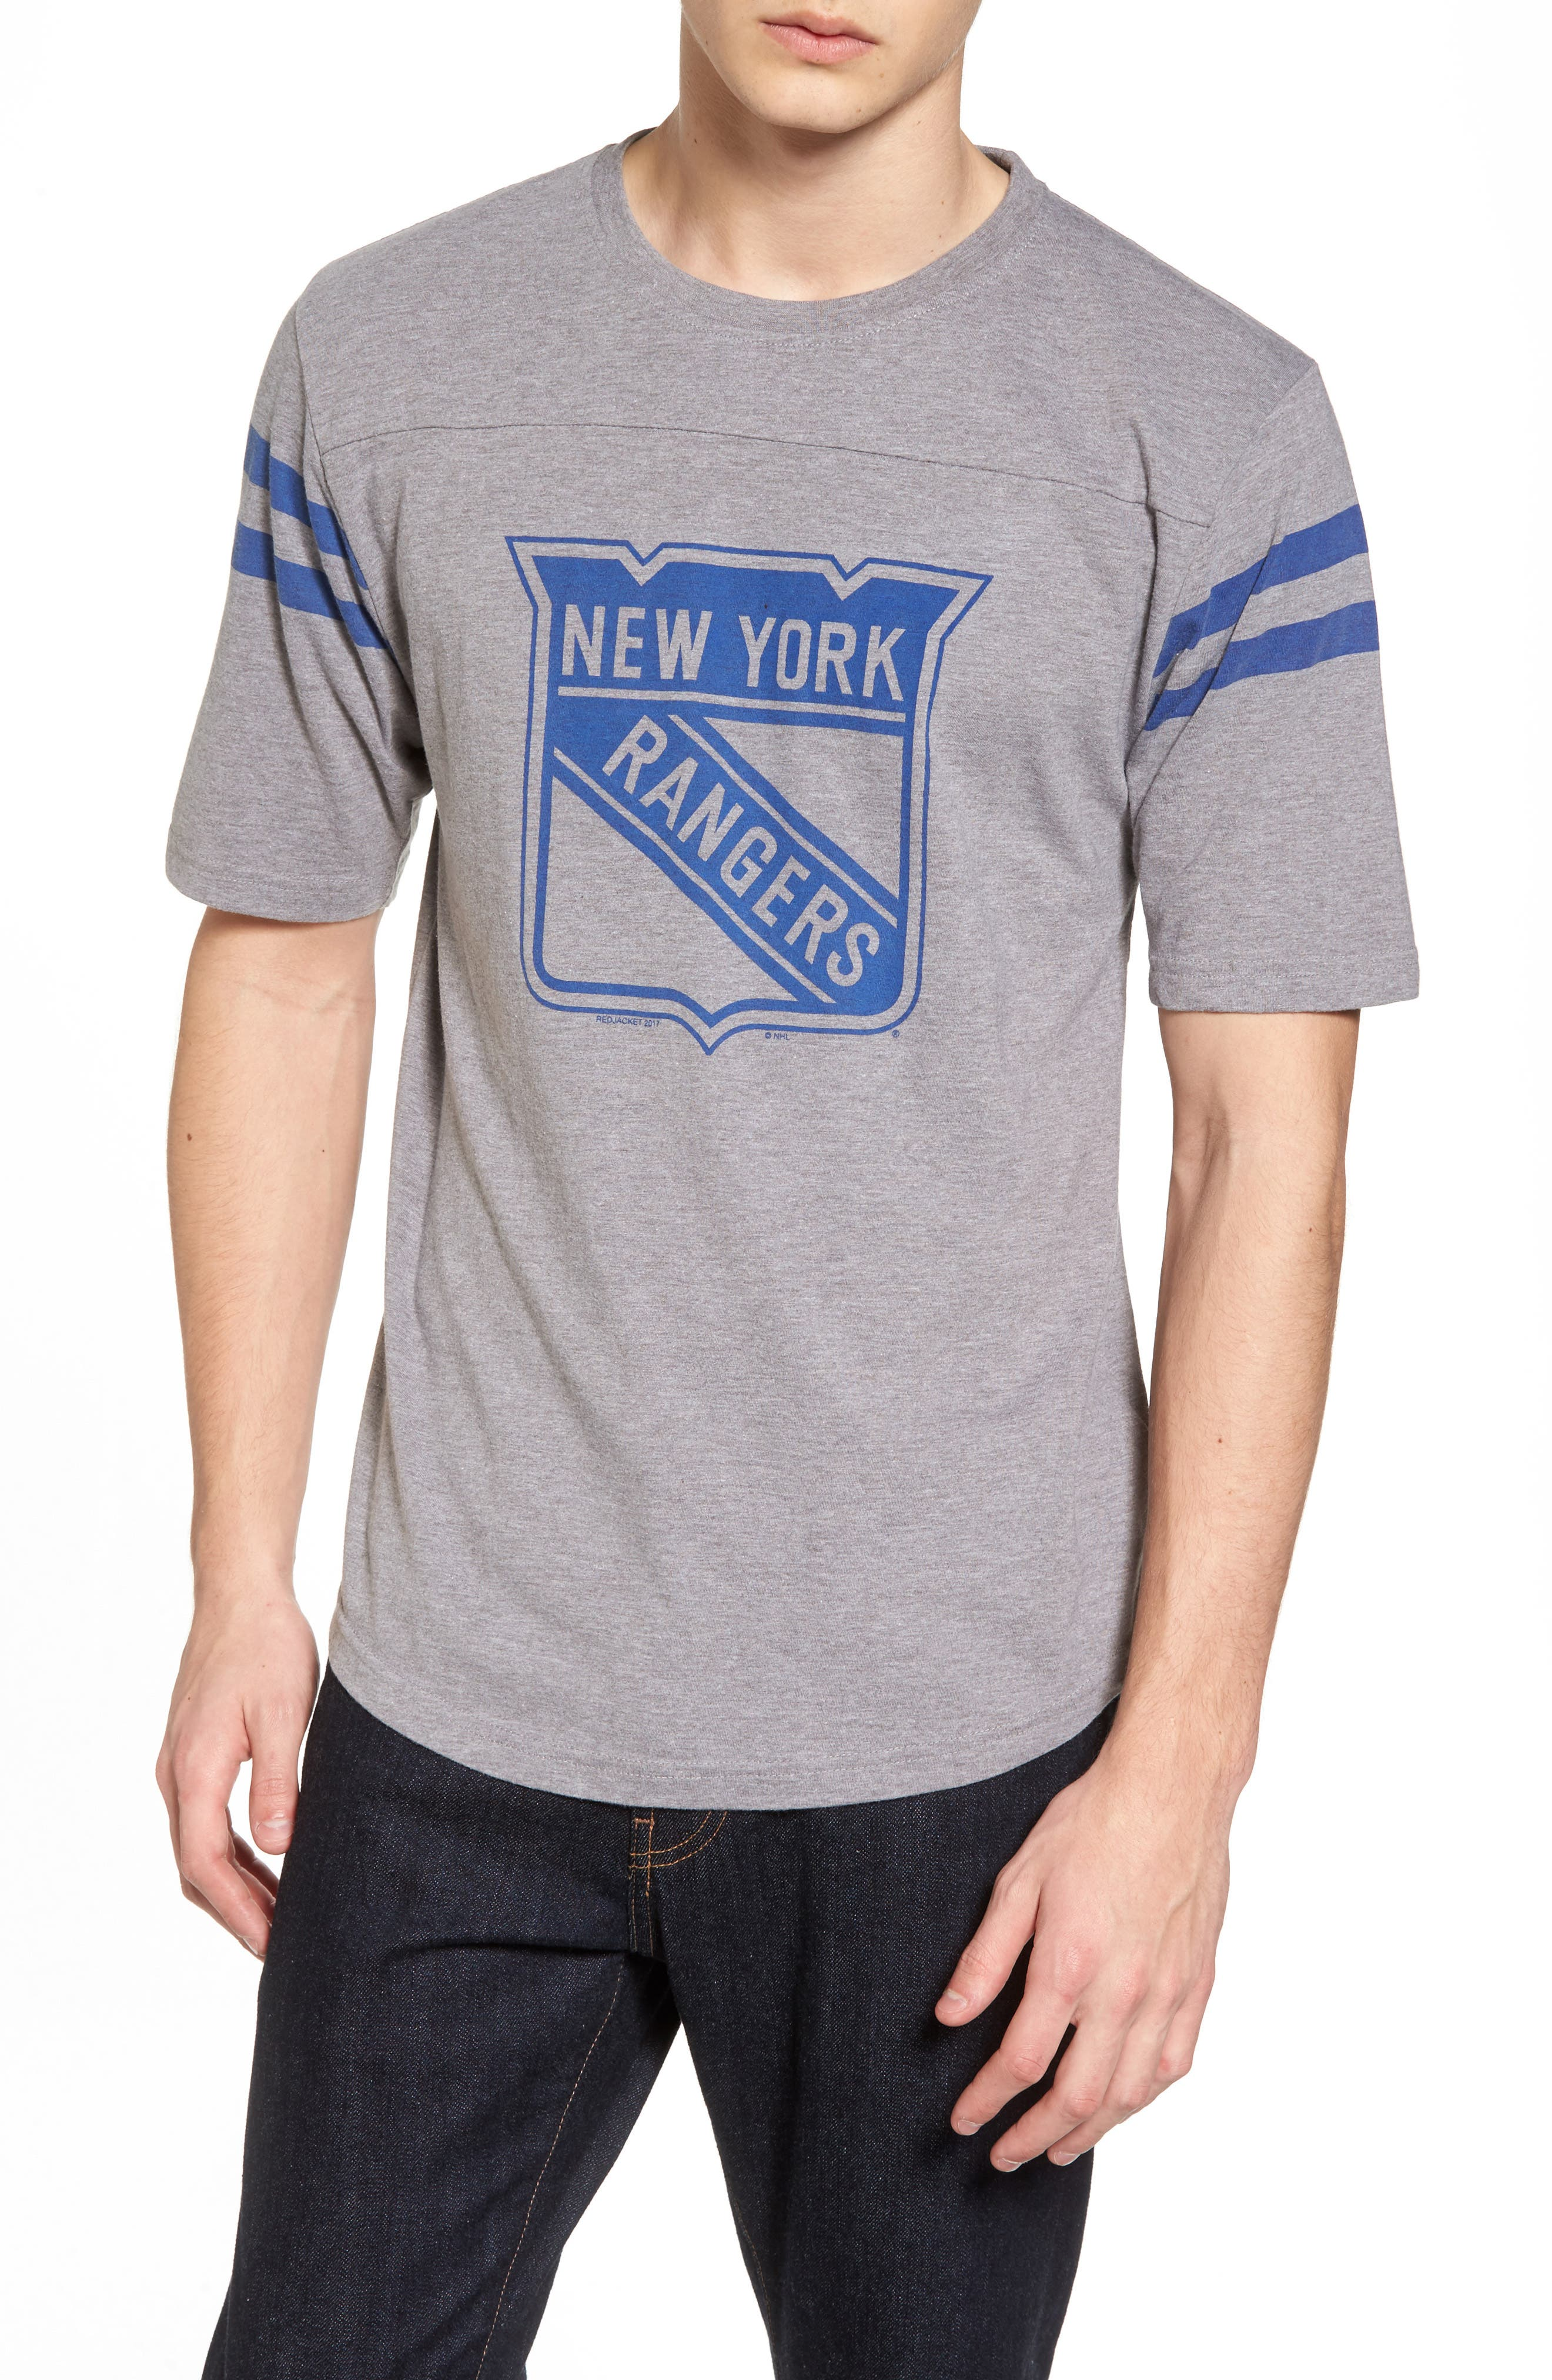 Crosby New York Rangers T-Shirt,                         Main,                         color, Heather Grey